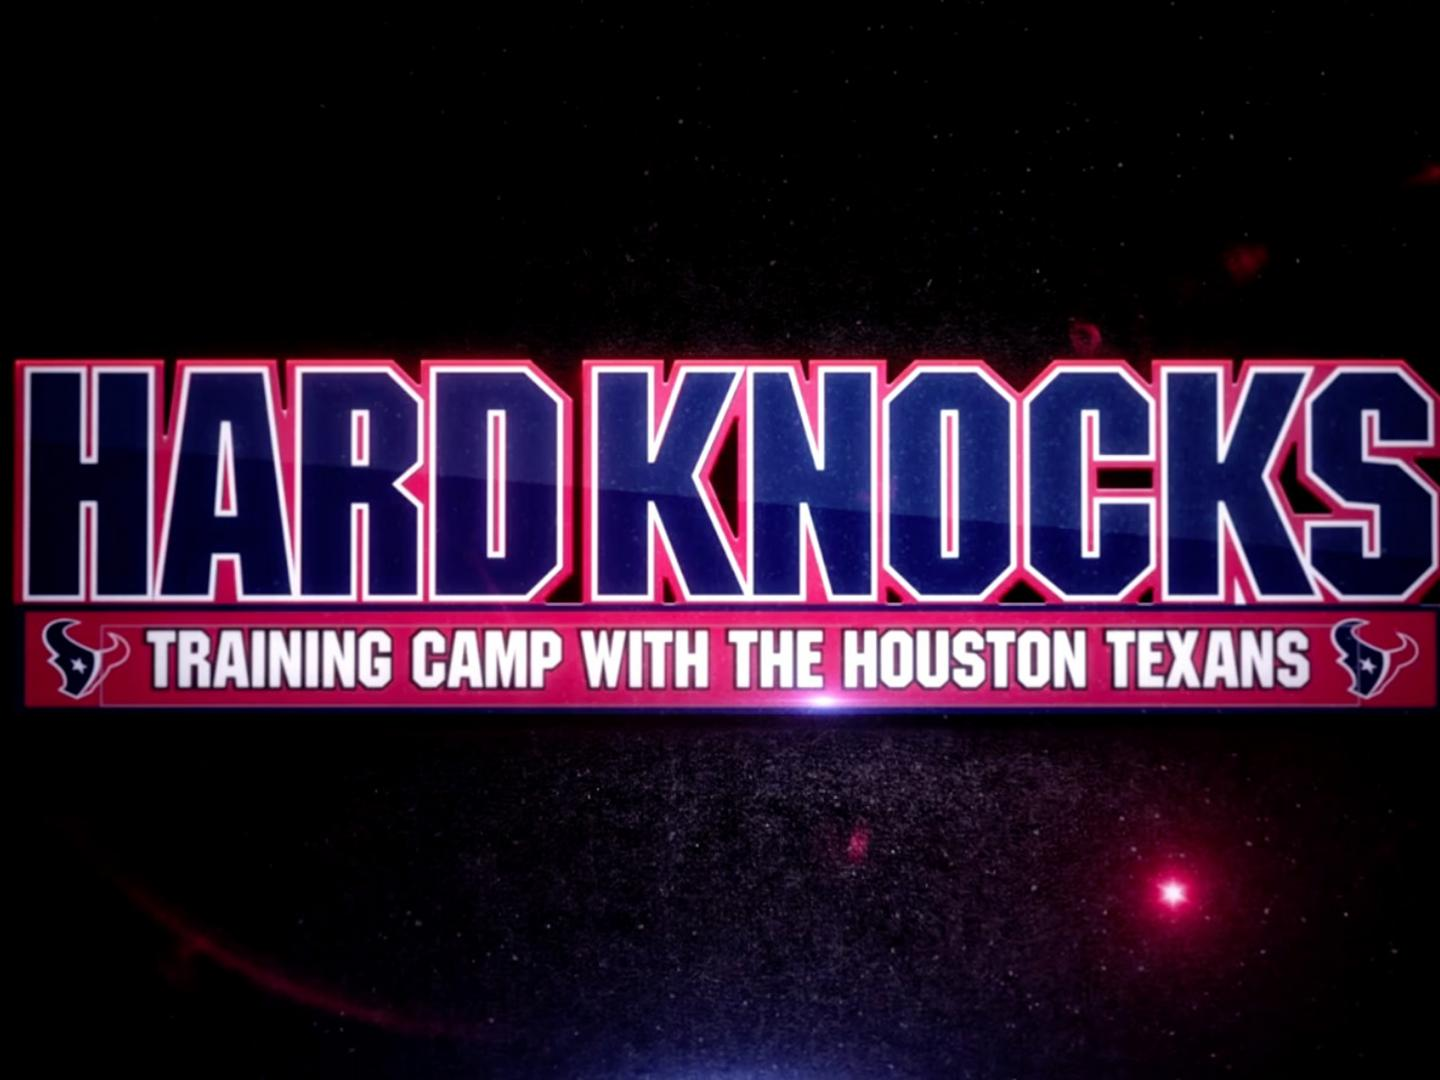 Hard Knocks: Training Camp with the Houston Texans: 9 to 5 Thumbnail